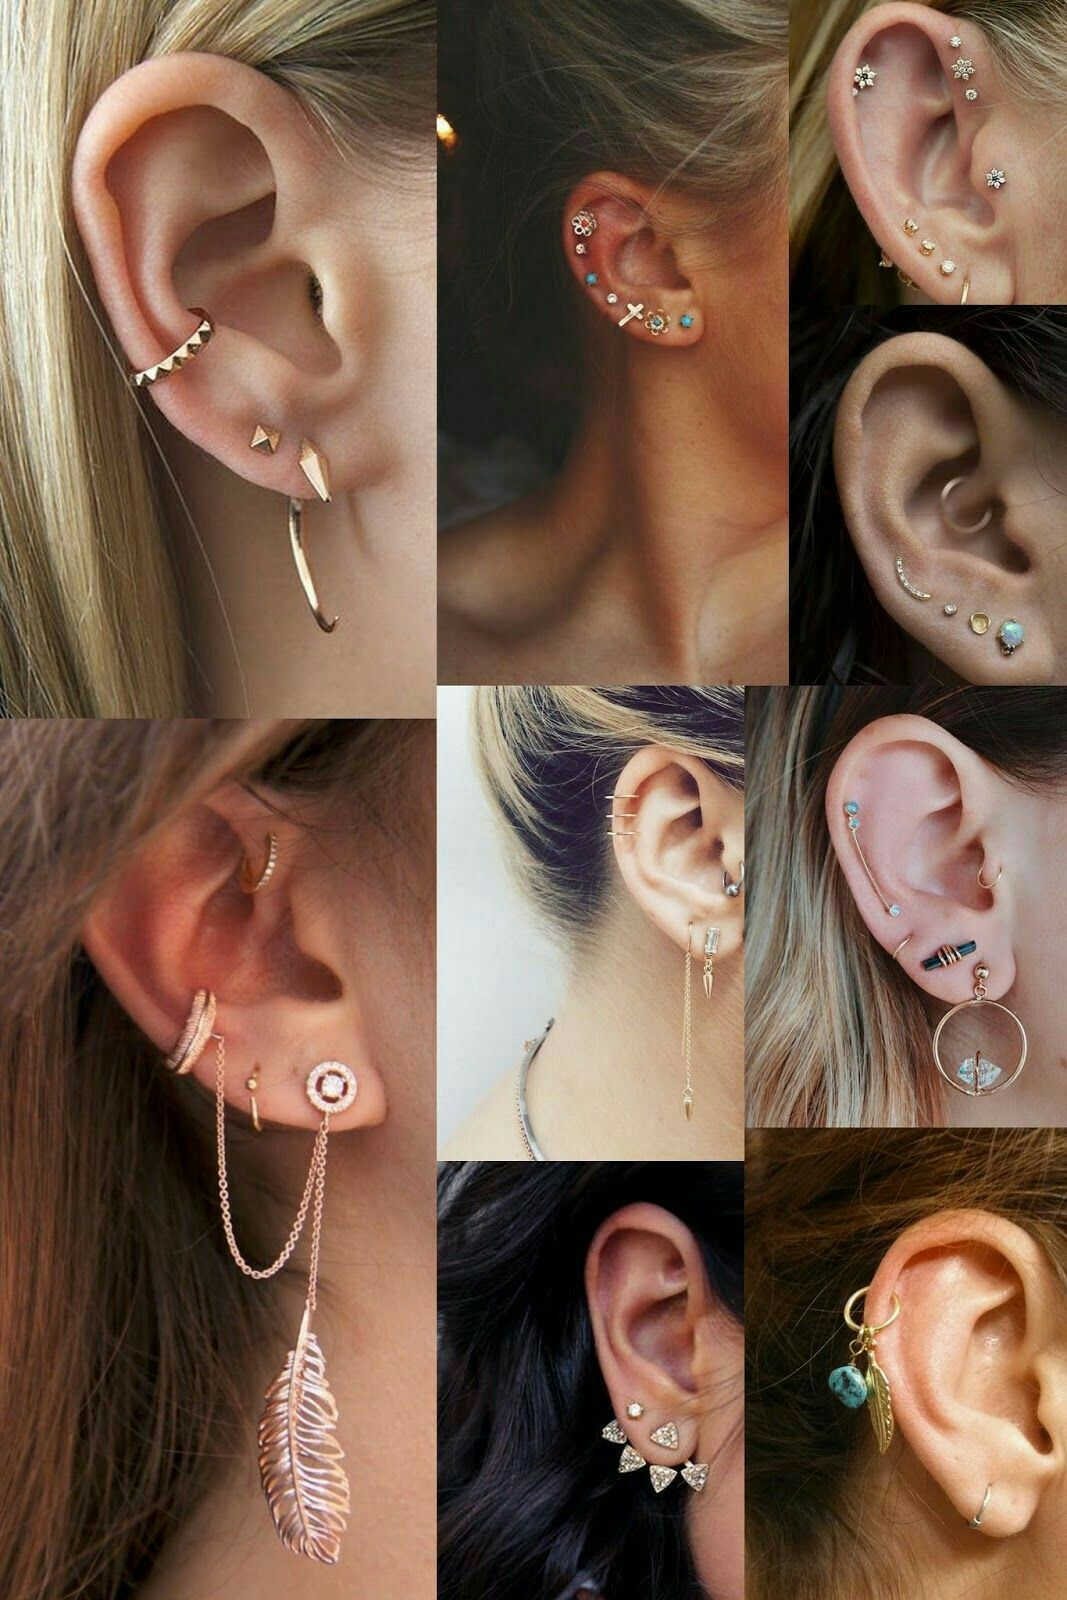 Piercing ideas for females  Ohrringe  piercings  Pinterest  Piercings Piercing and Ear piercings